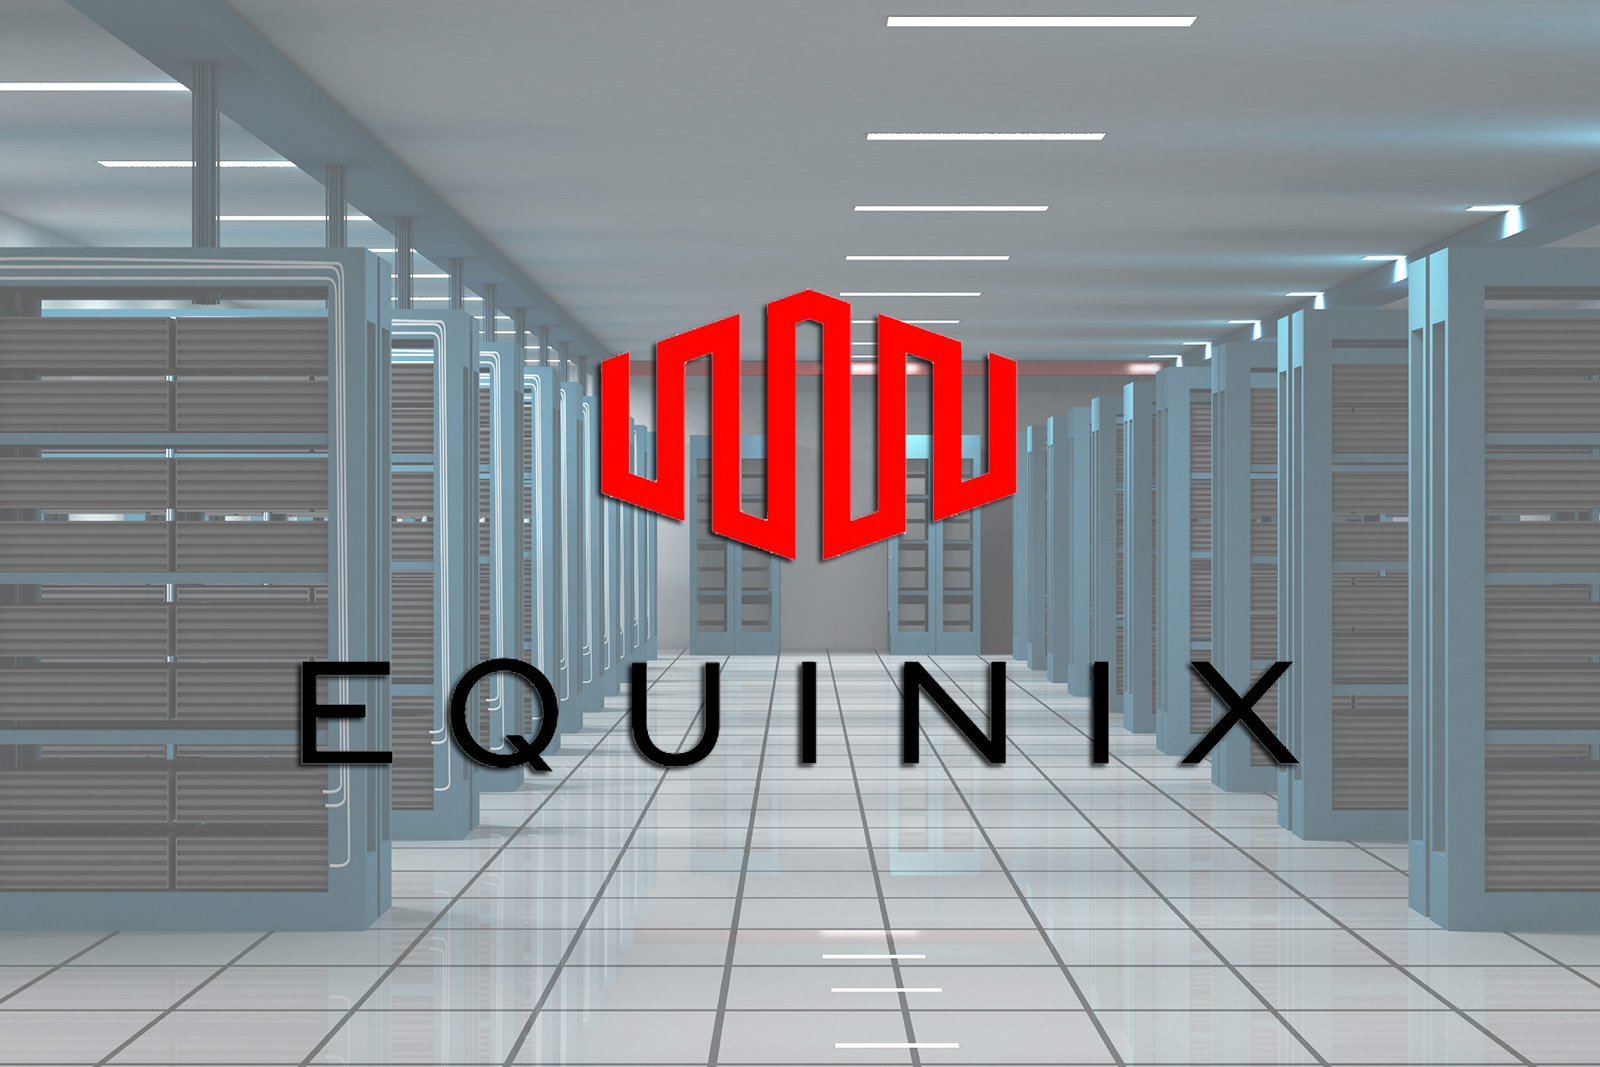 Photo of Platform Equinix Evolves with Expanded Connectivity Options